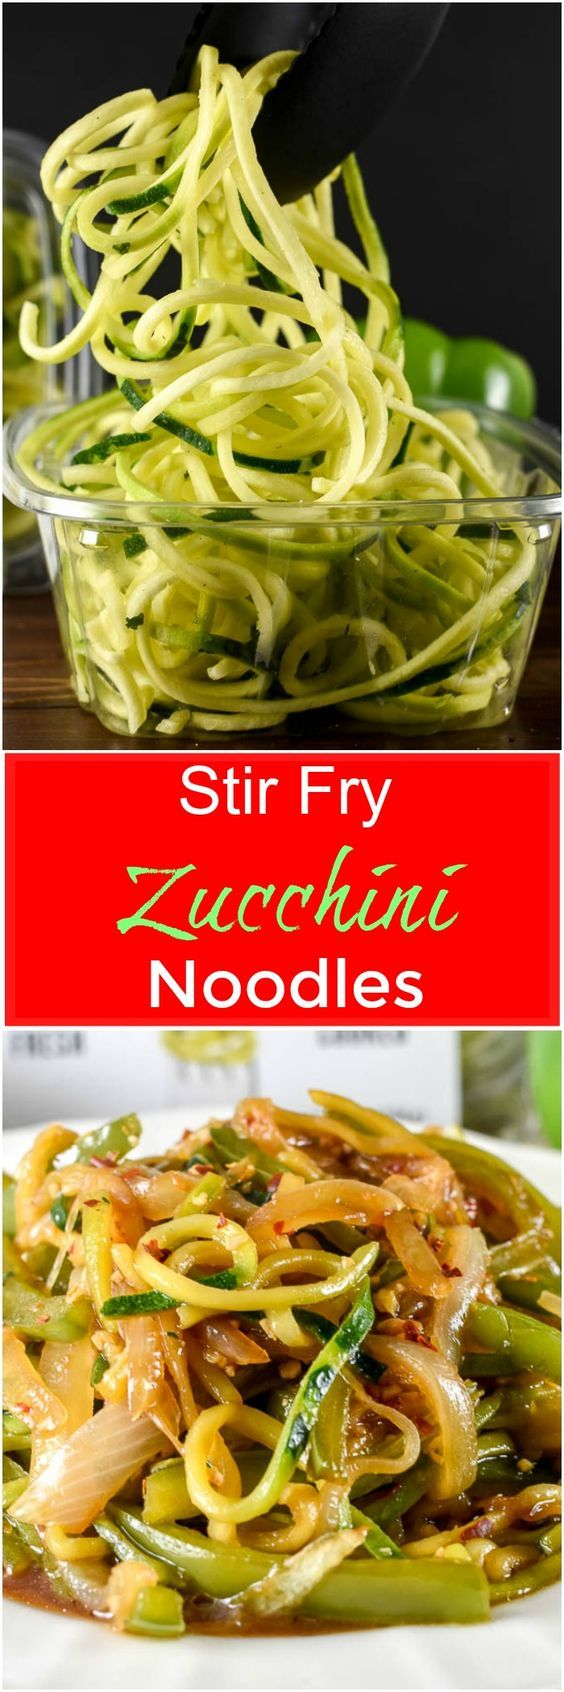 Stir Fry Zucchini Noodles, or zoodles, make a quick and easy low carb side dish that does not require a Spiralizer and is loaded with Asian-inspired flavor. #ad via @flavormosaic